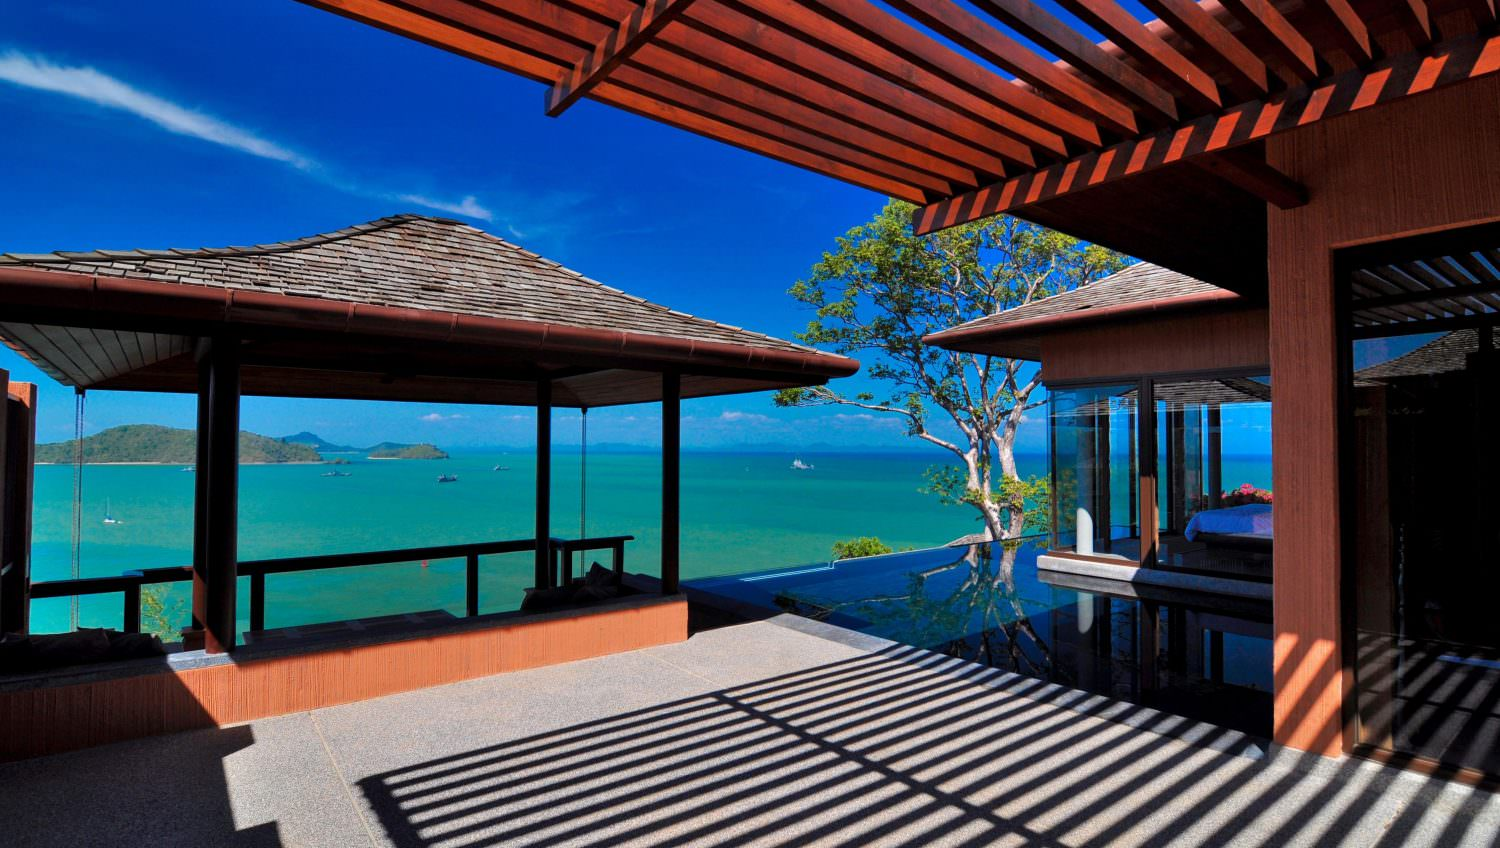 4-One-Bedroom-Luxury-Pool-Villa-Ocean-View-B-Sri-Panwa-Hotel-Phuket-Resort-Spa